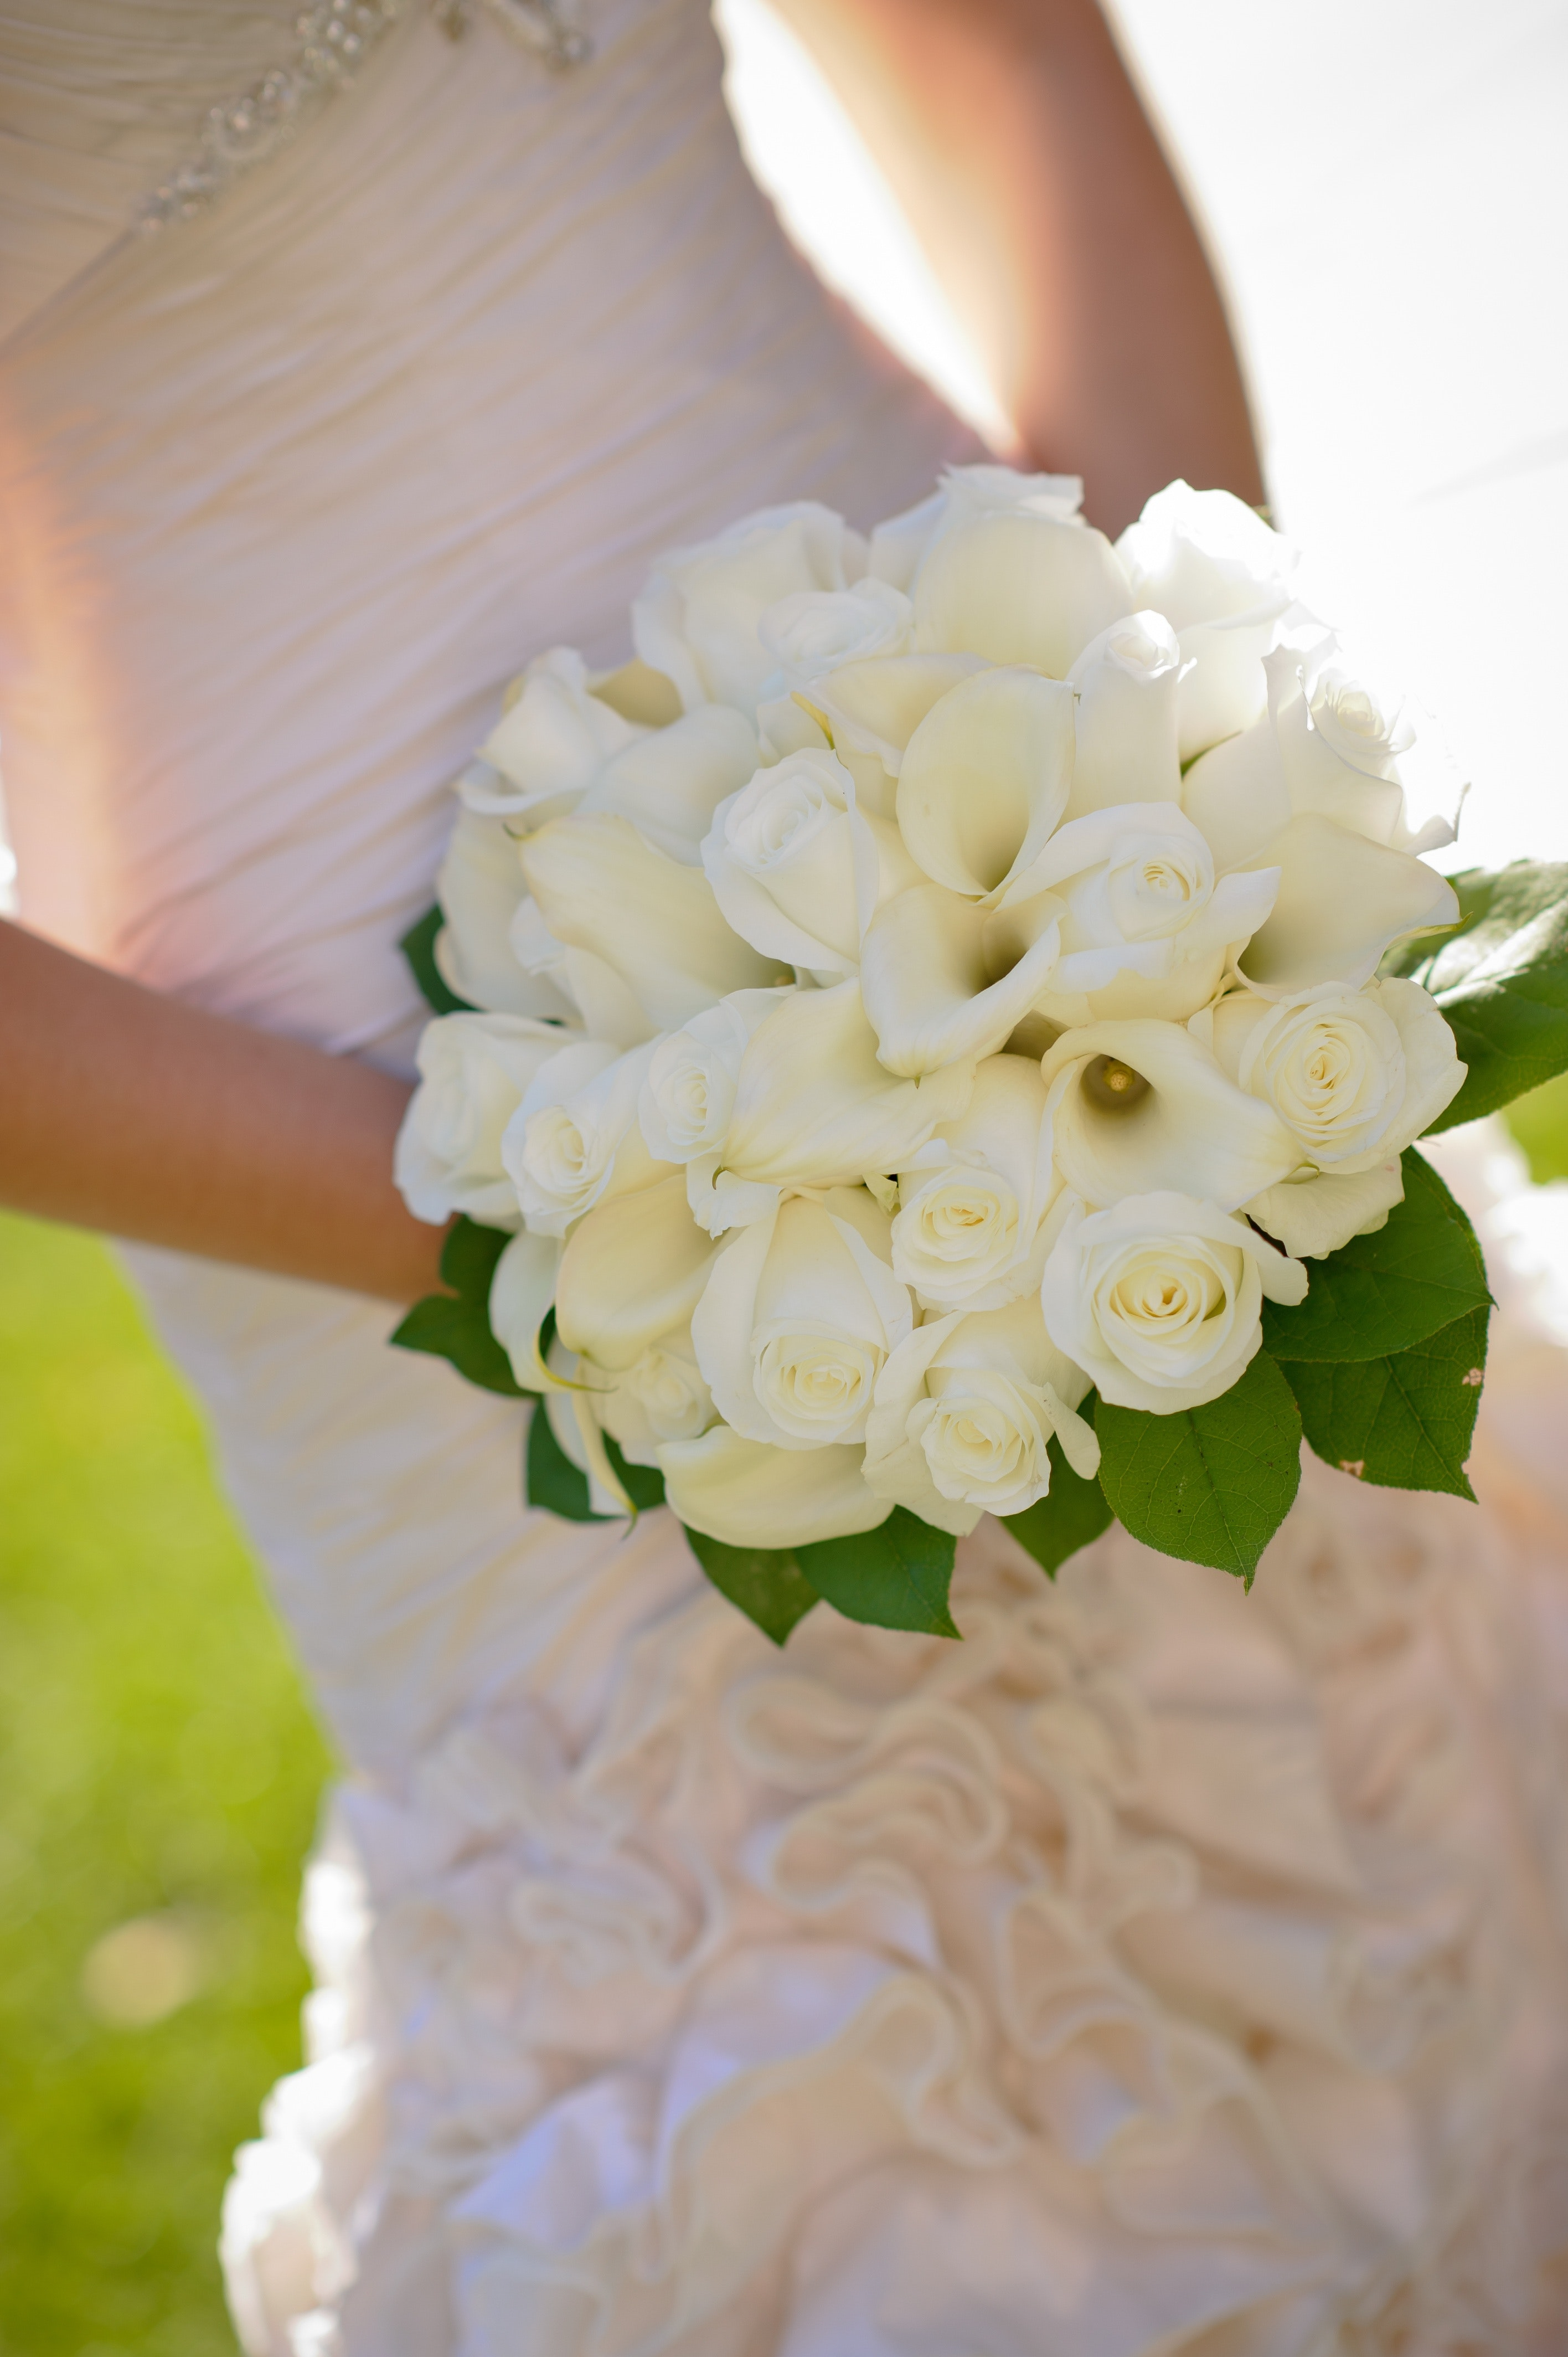 Woman in wedding dress holding white flower bouquet photo